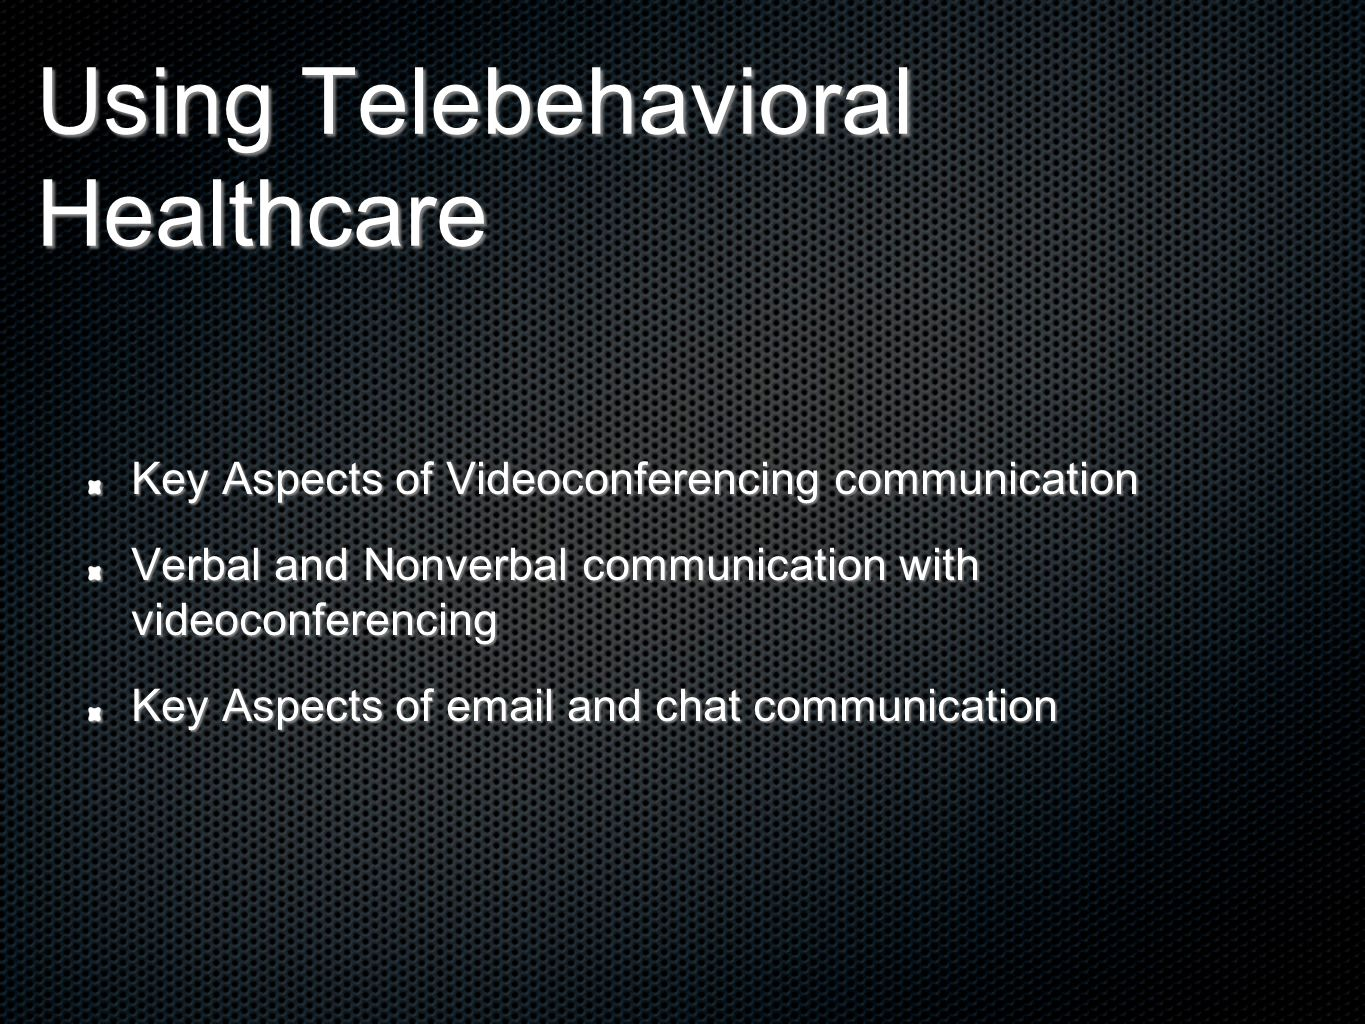 Using Telebehavioral Healthcare Key Aspects of Videoconferencing communication Verbal and Nonverbal communication with videoconferencing Key Aspects of email and chat communication